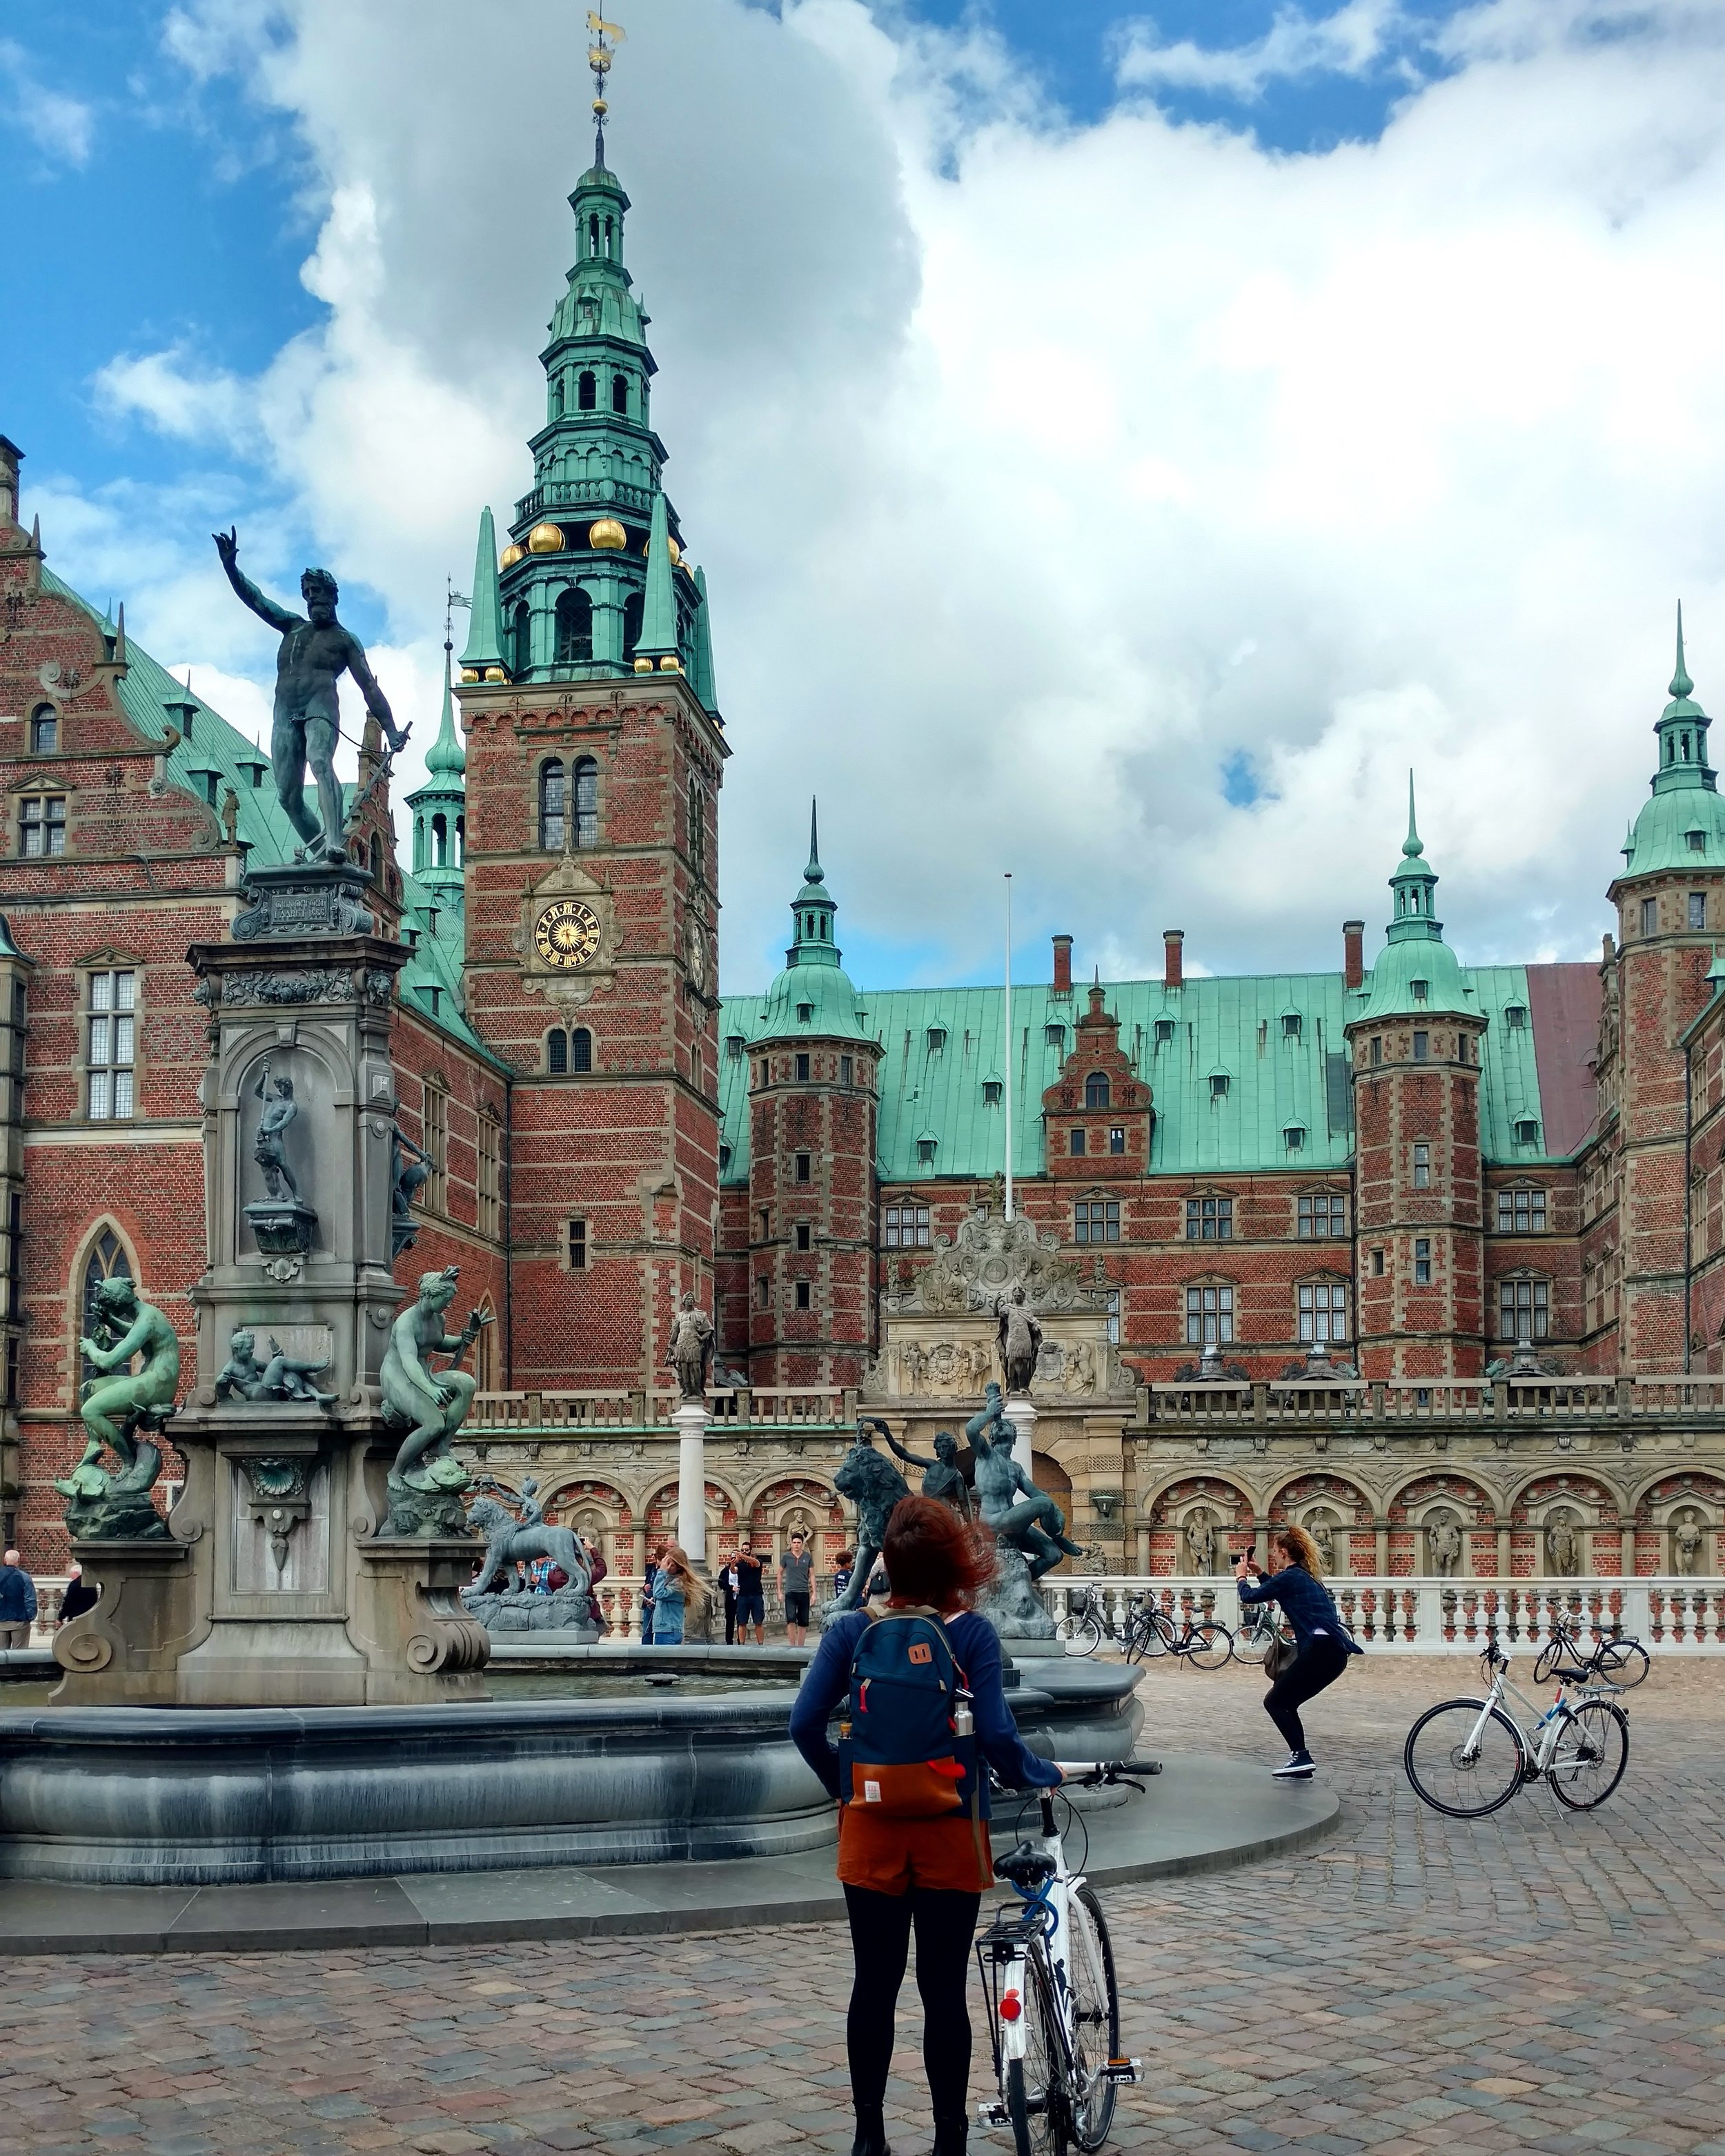 Me and my bike in front of Frederiksborg Castle